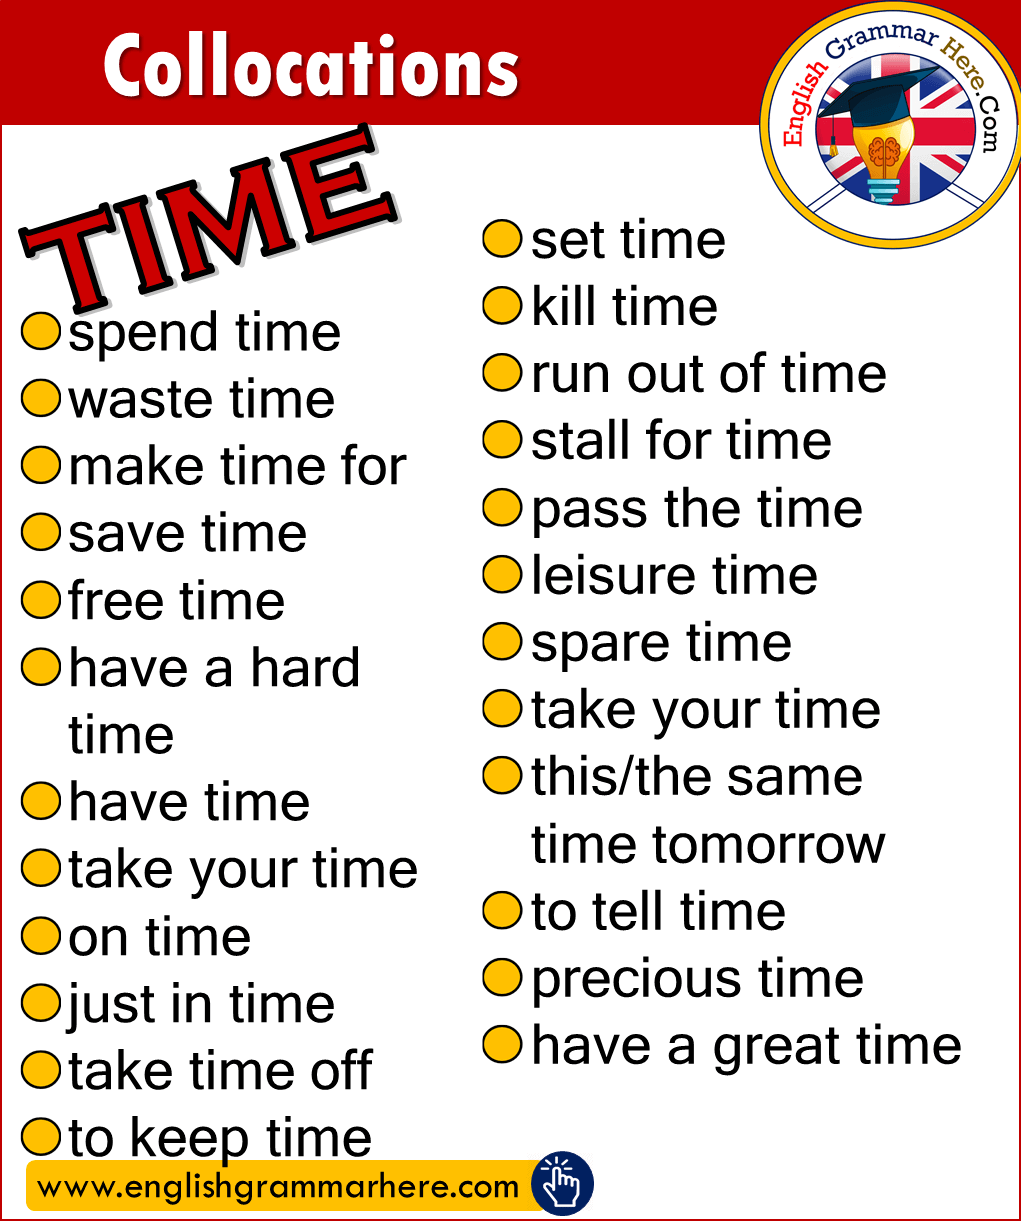 Collocations with TIME in English